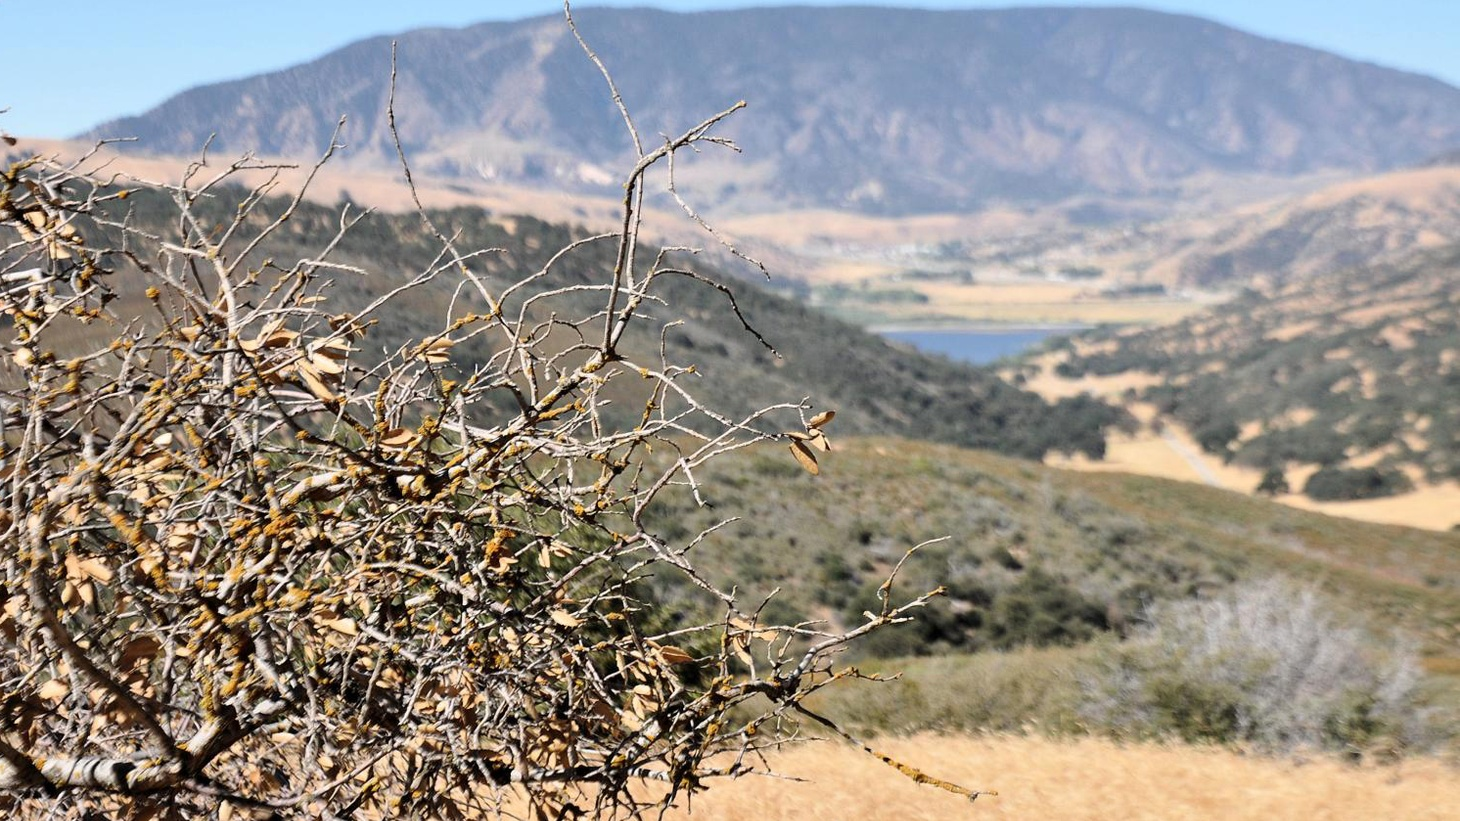 A controversial plan to develop thousands of acres cleared a major hurdle this week in Los Angeles County, securing approval from the region's planning commission. The idea is to convert 12,500 acres of open space into a new housing community.